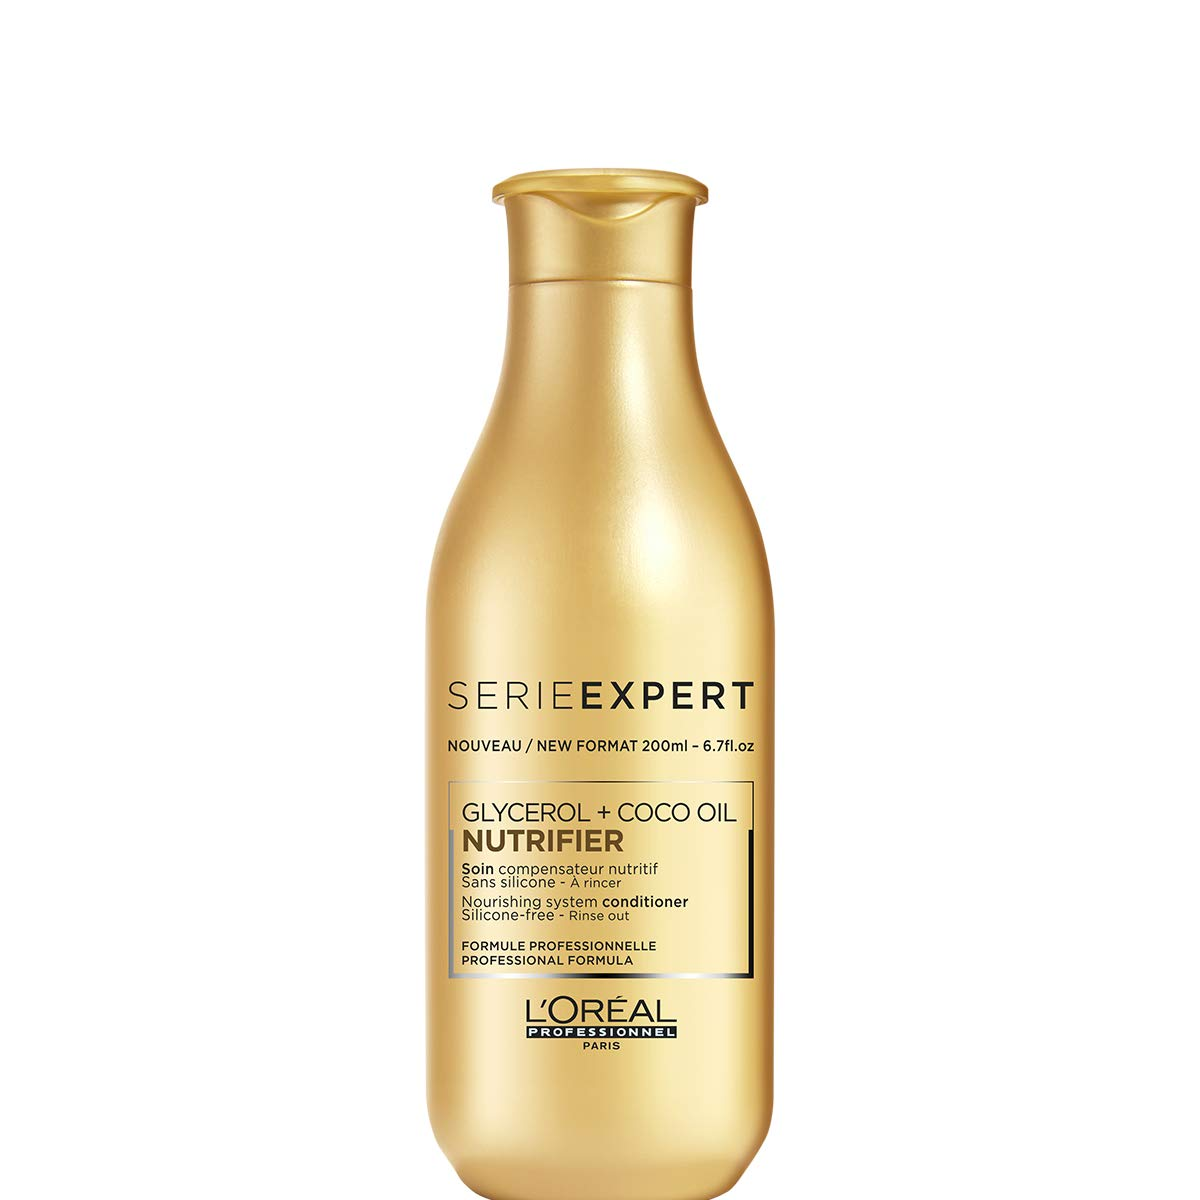 L'Oreal Professionnel Serie Expert - Nutrifier Glycerol + Coco Oil Nourishing System Silicone-Free Conditioner 200ml/6.7oz